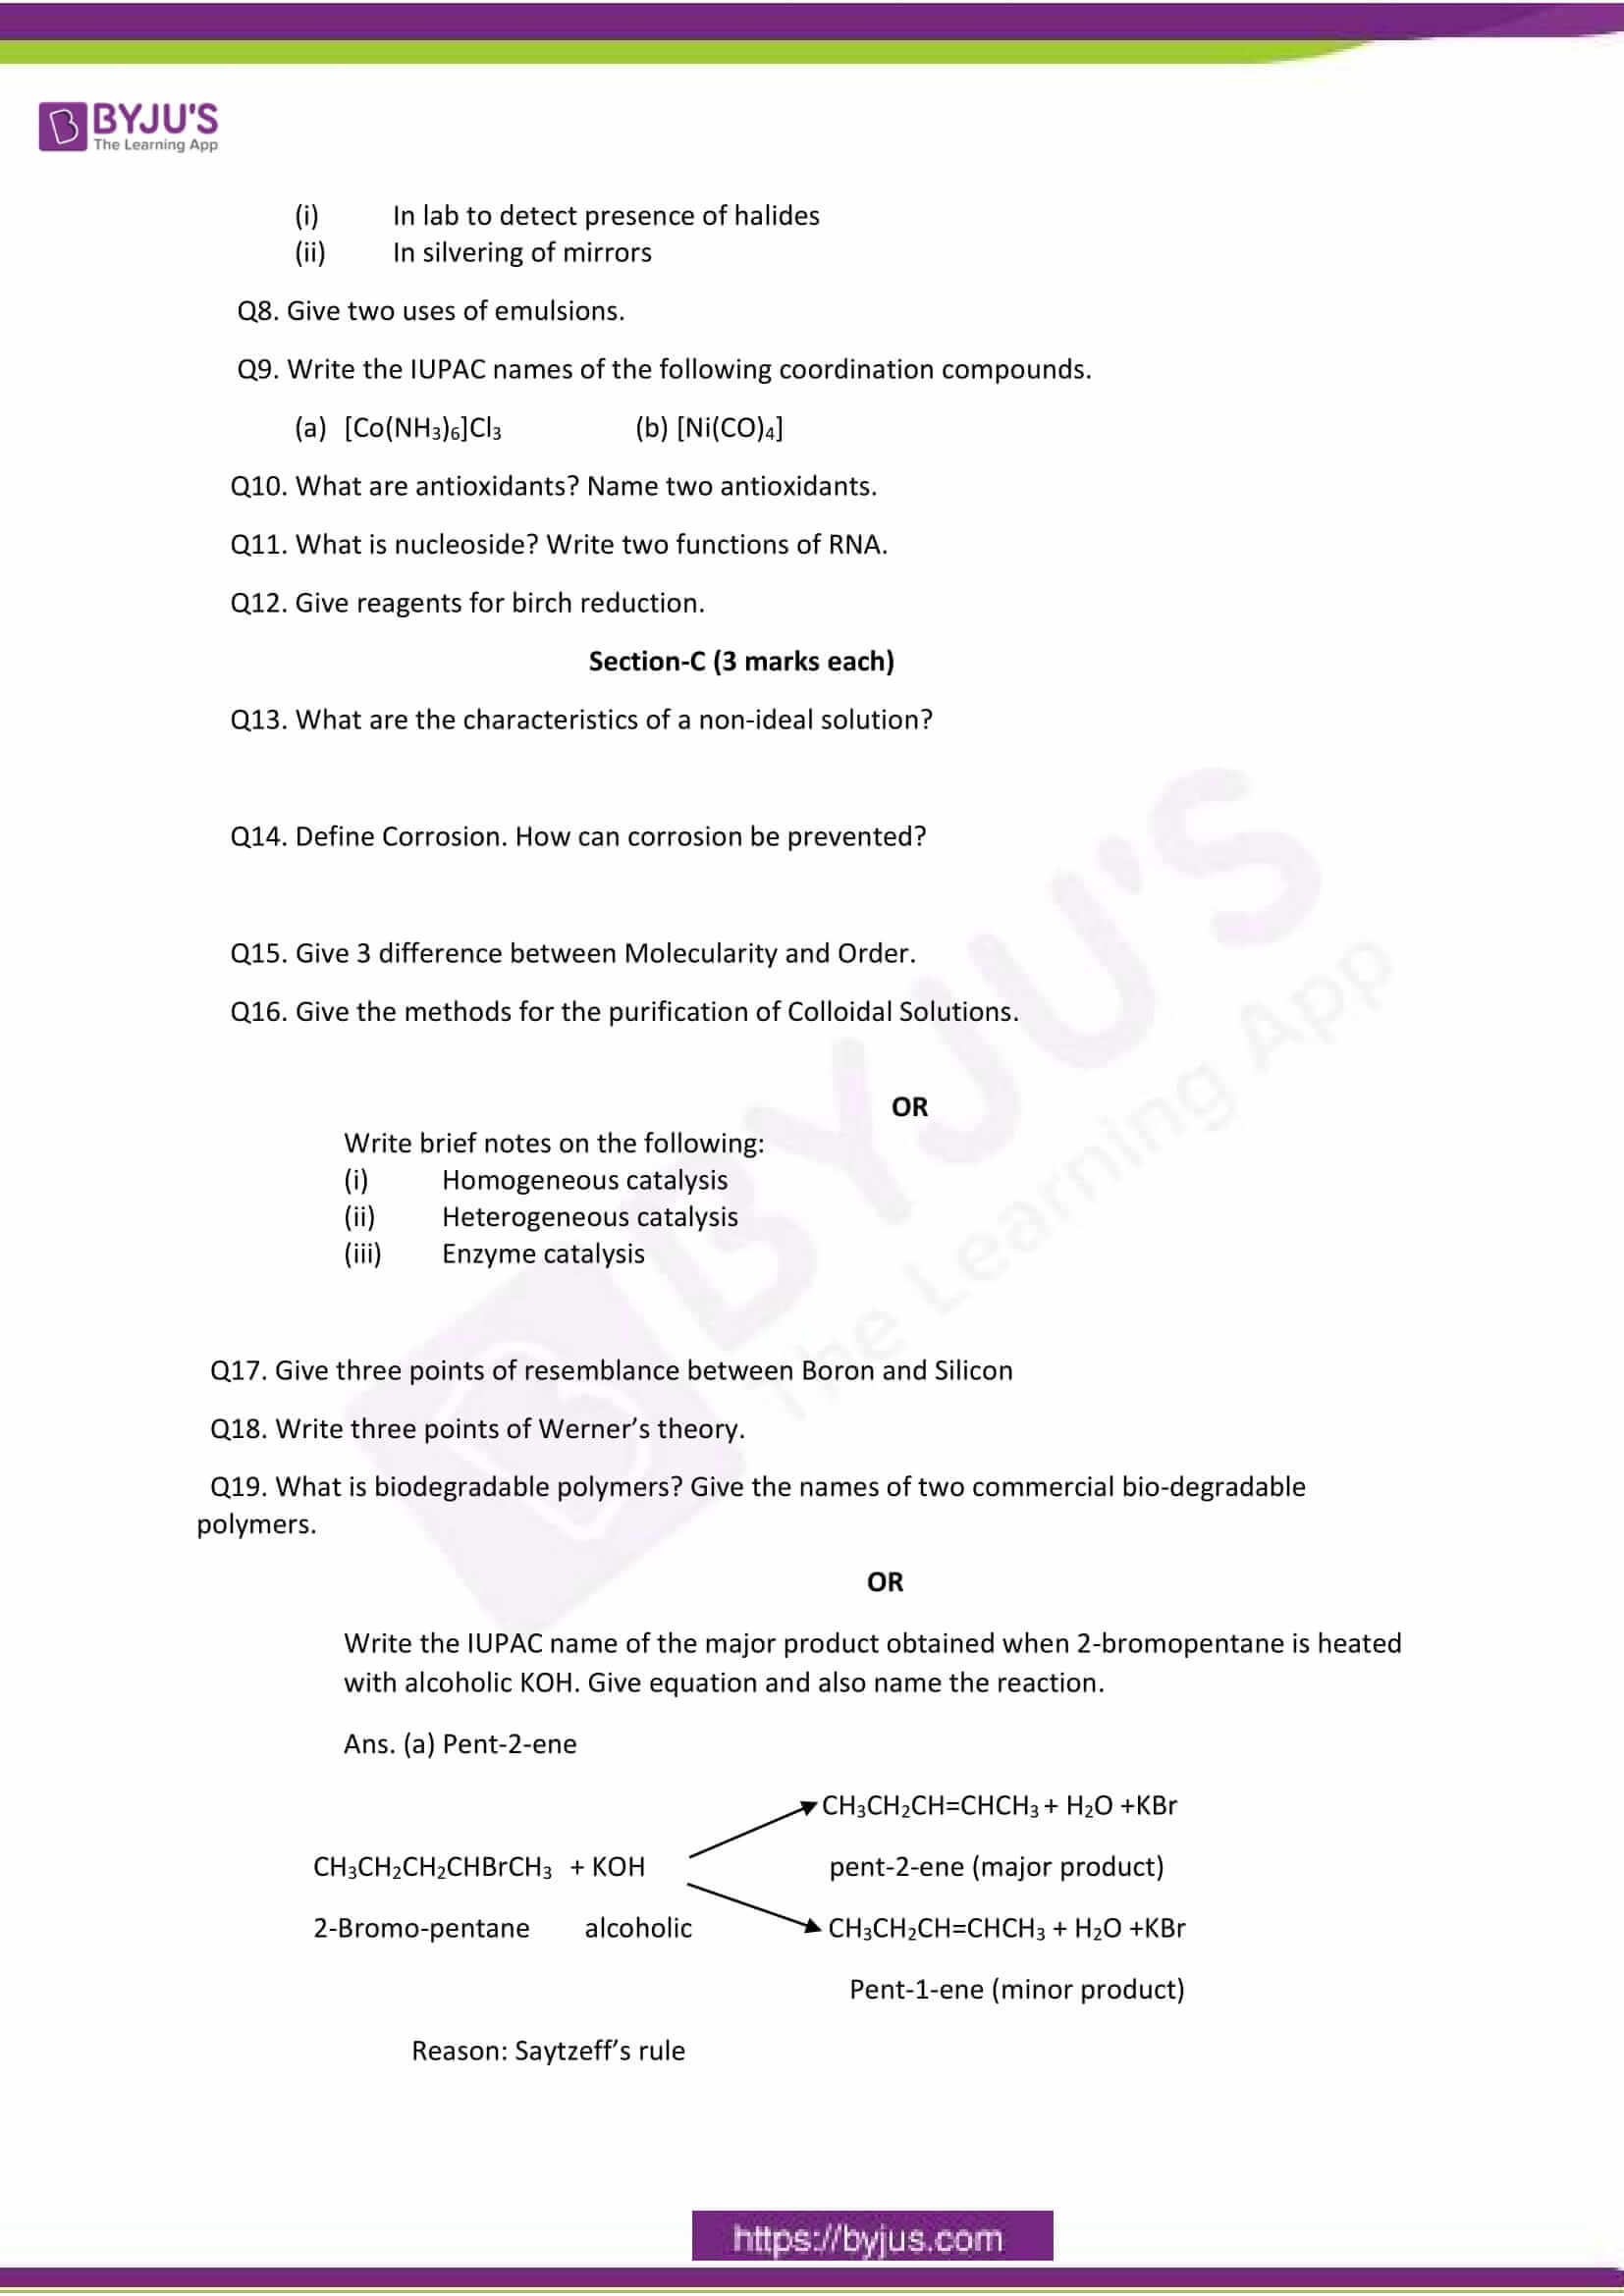 cbse sample paper class 12 chemistry set 1